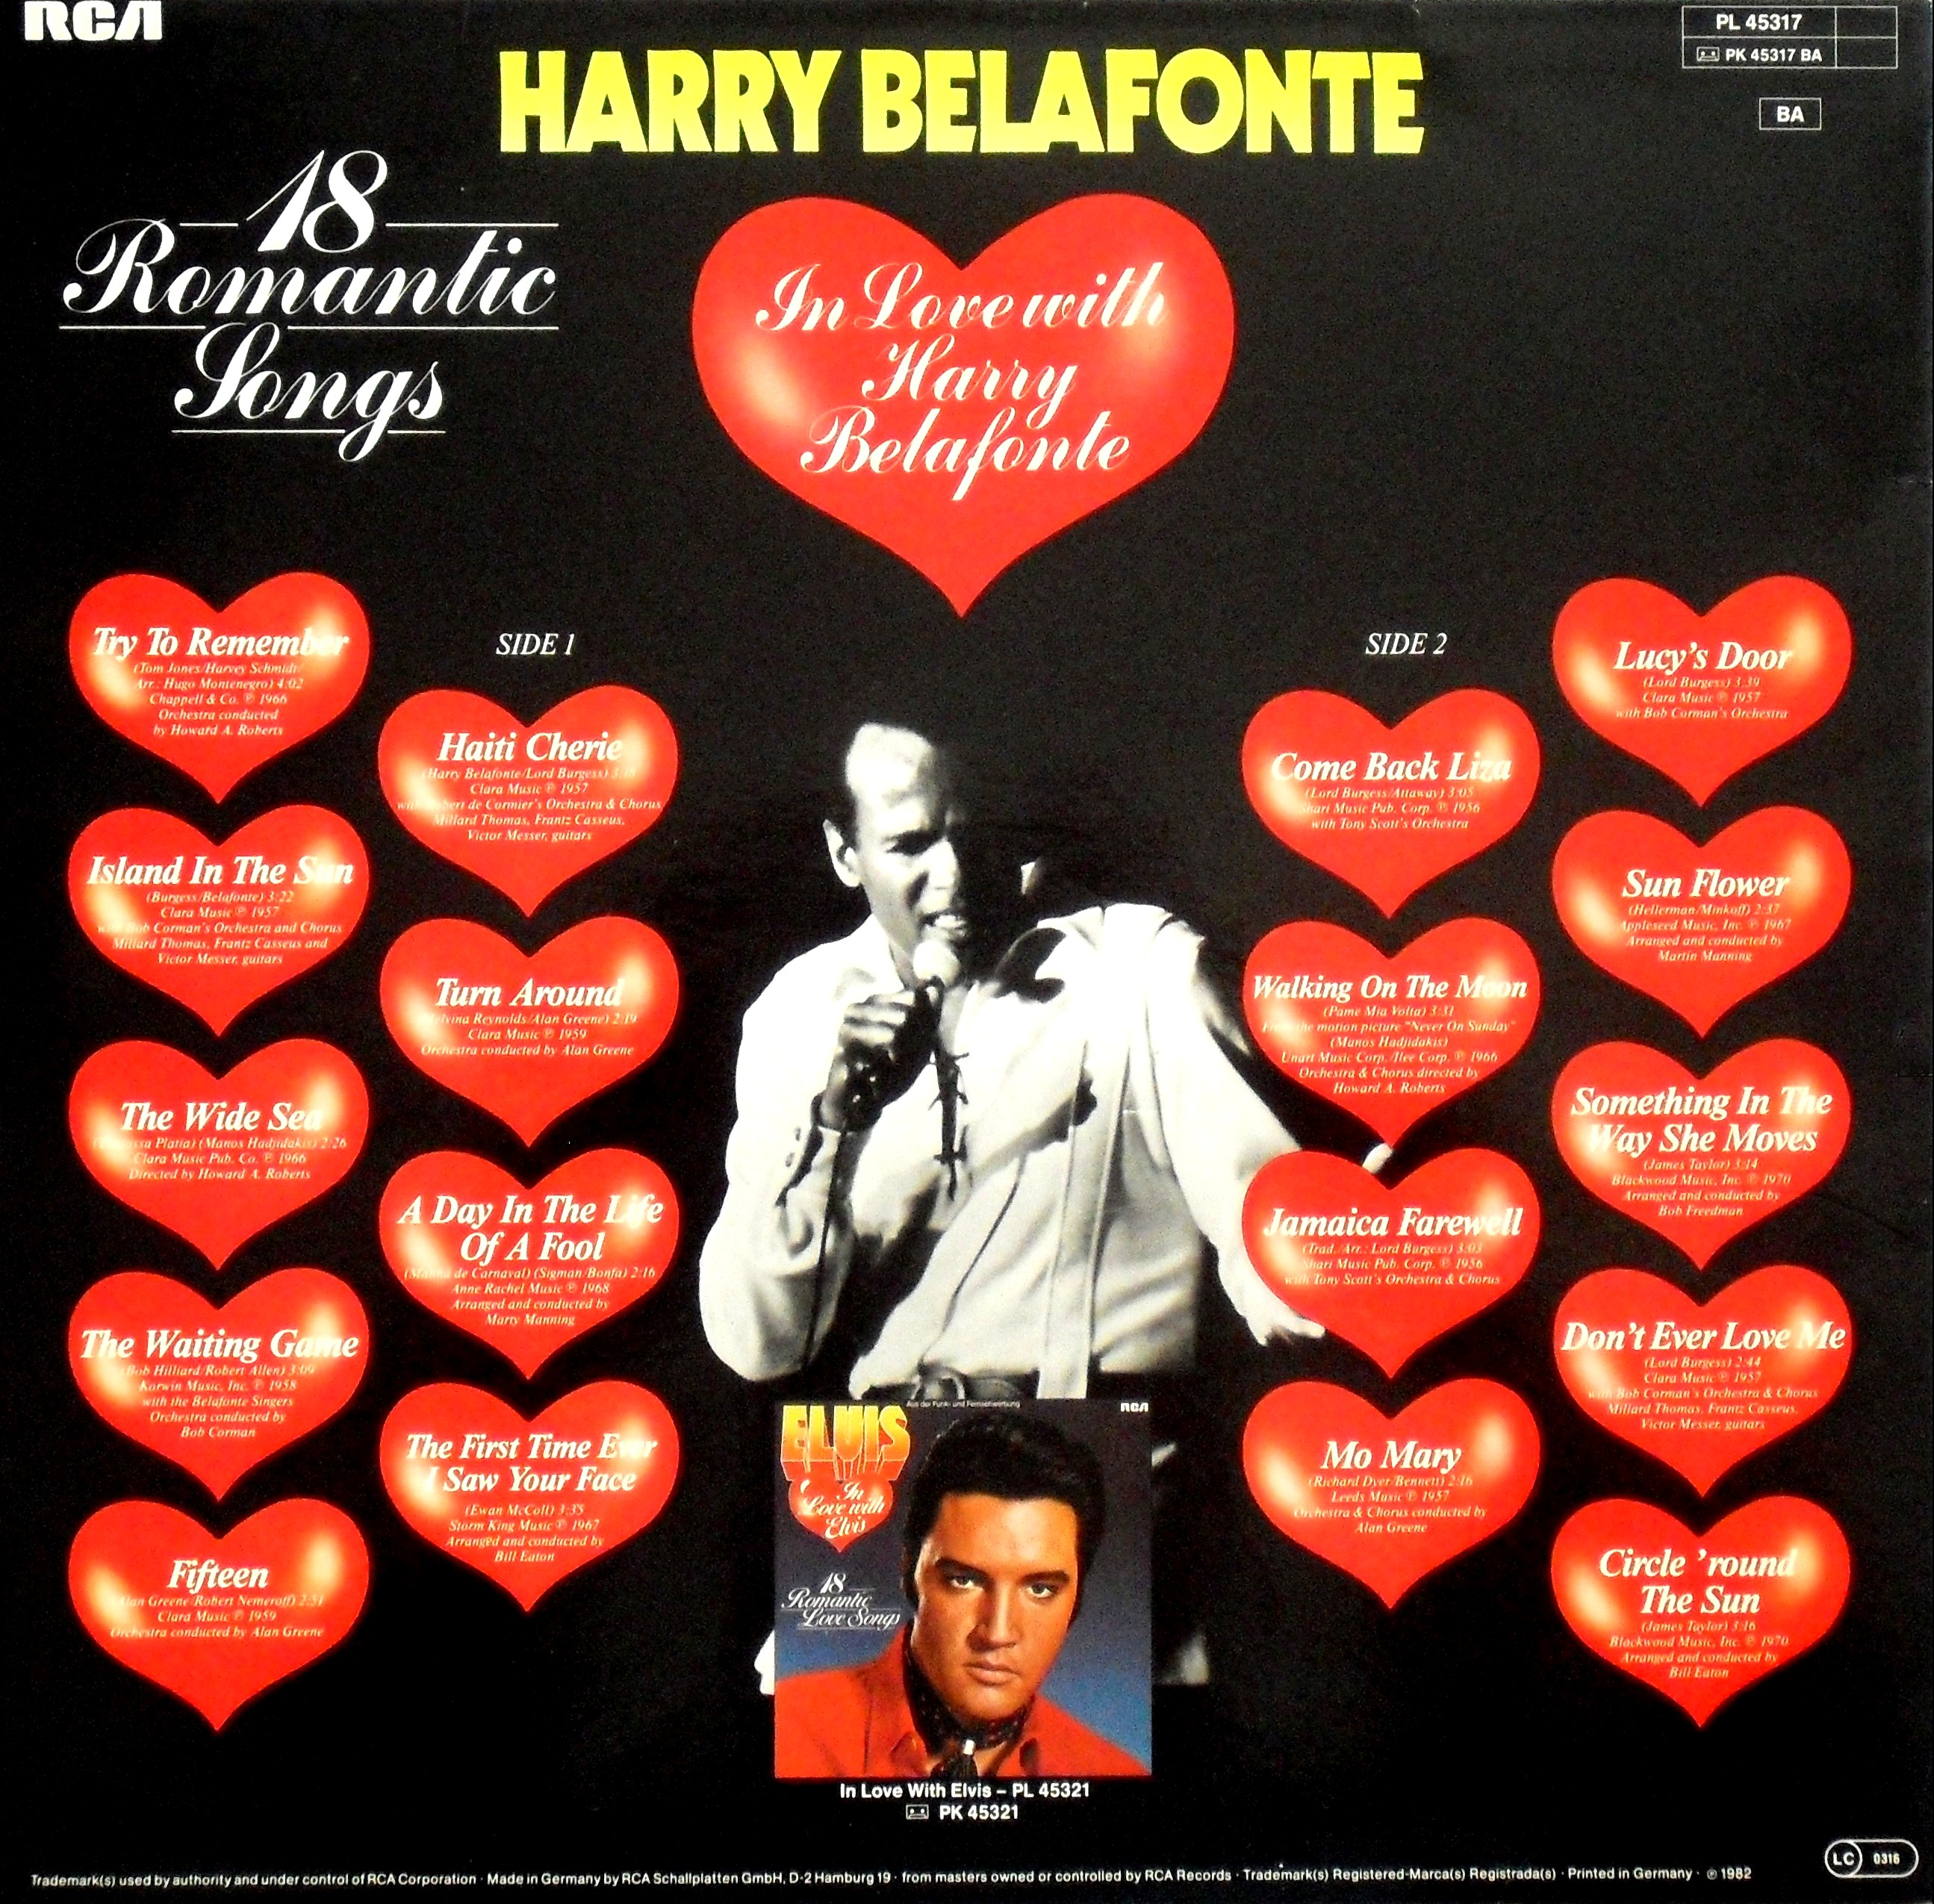 IN LOVE WITH ELVIS - 18 ROMANTIC LOVE SONGS Belafonte...49d4i